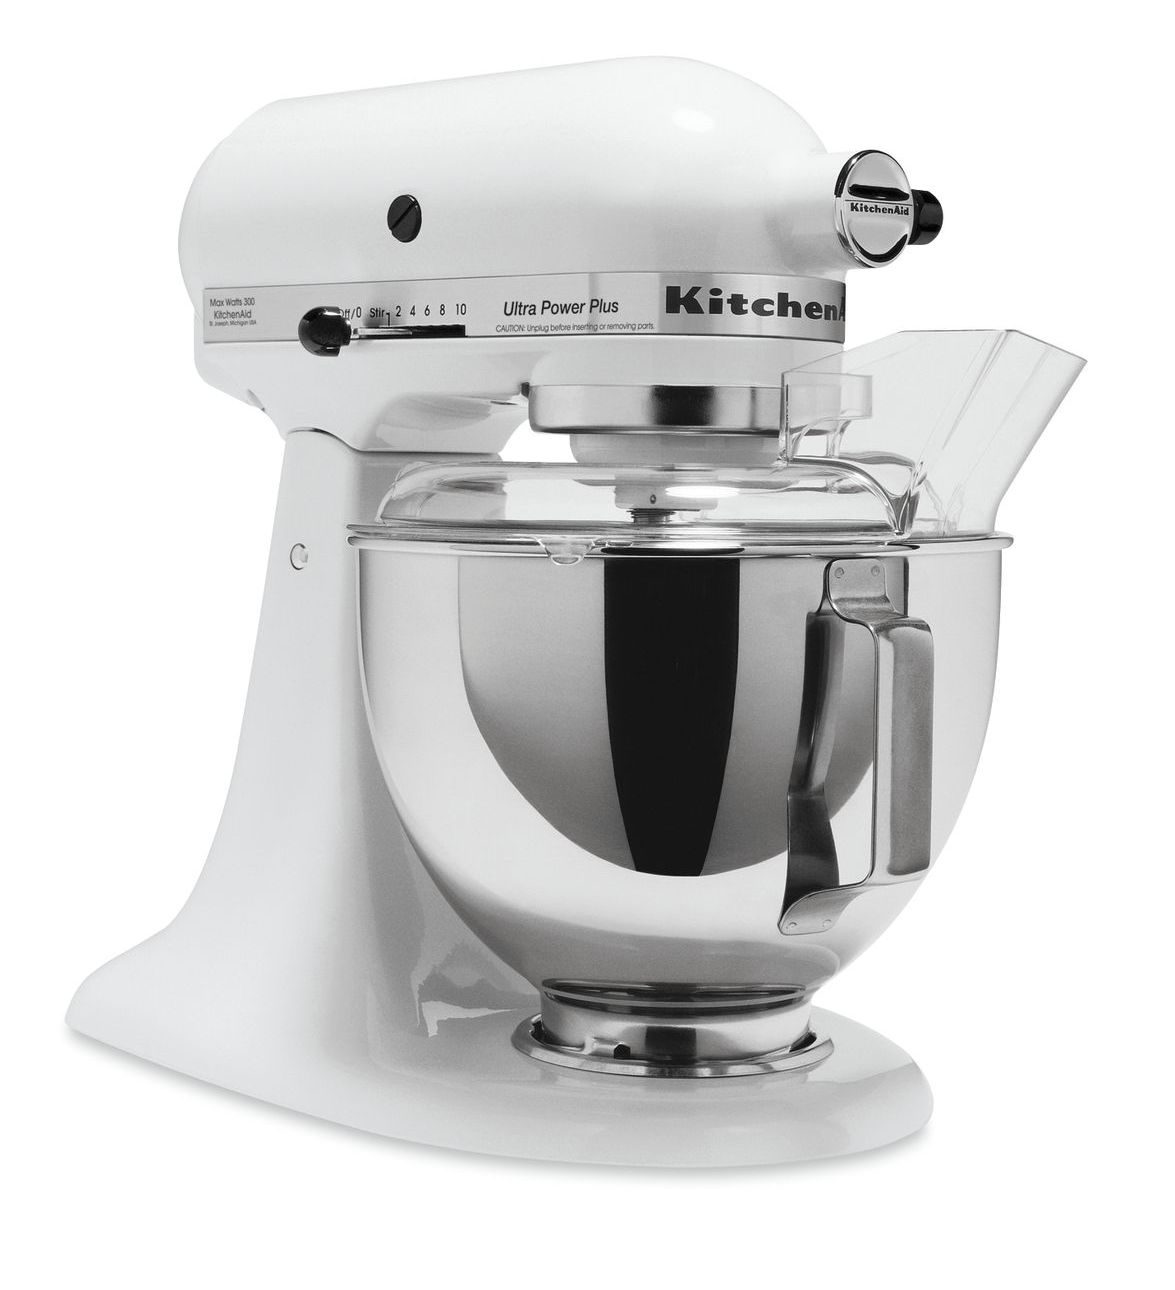 Sears Canada Deals: 33% Off KitchenAid Ultra Power Plus Stand ...